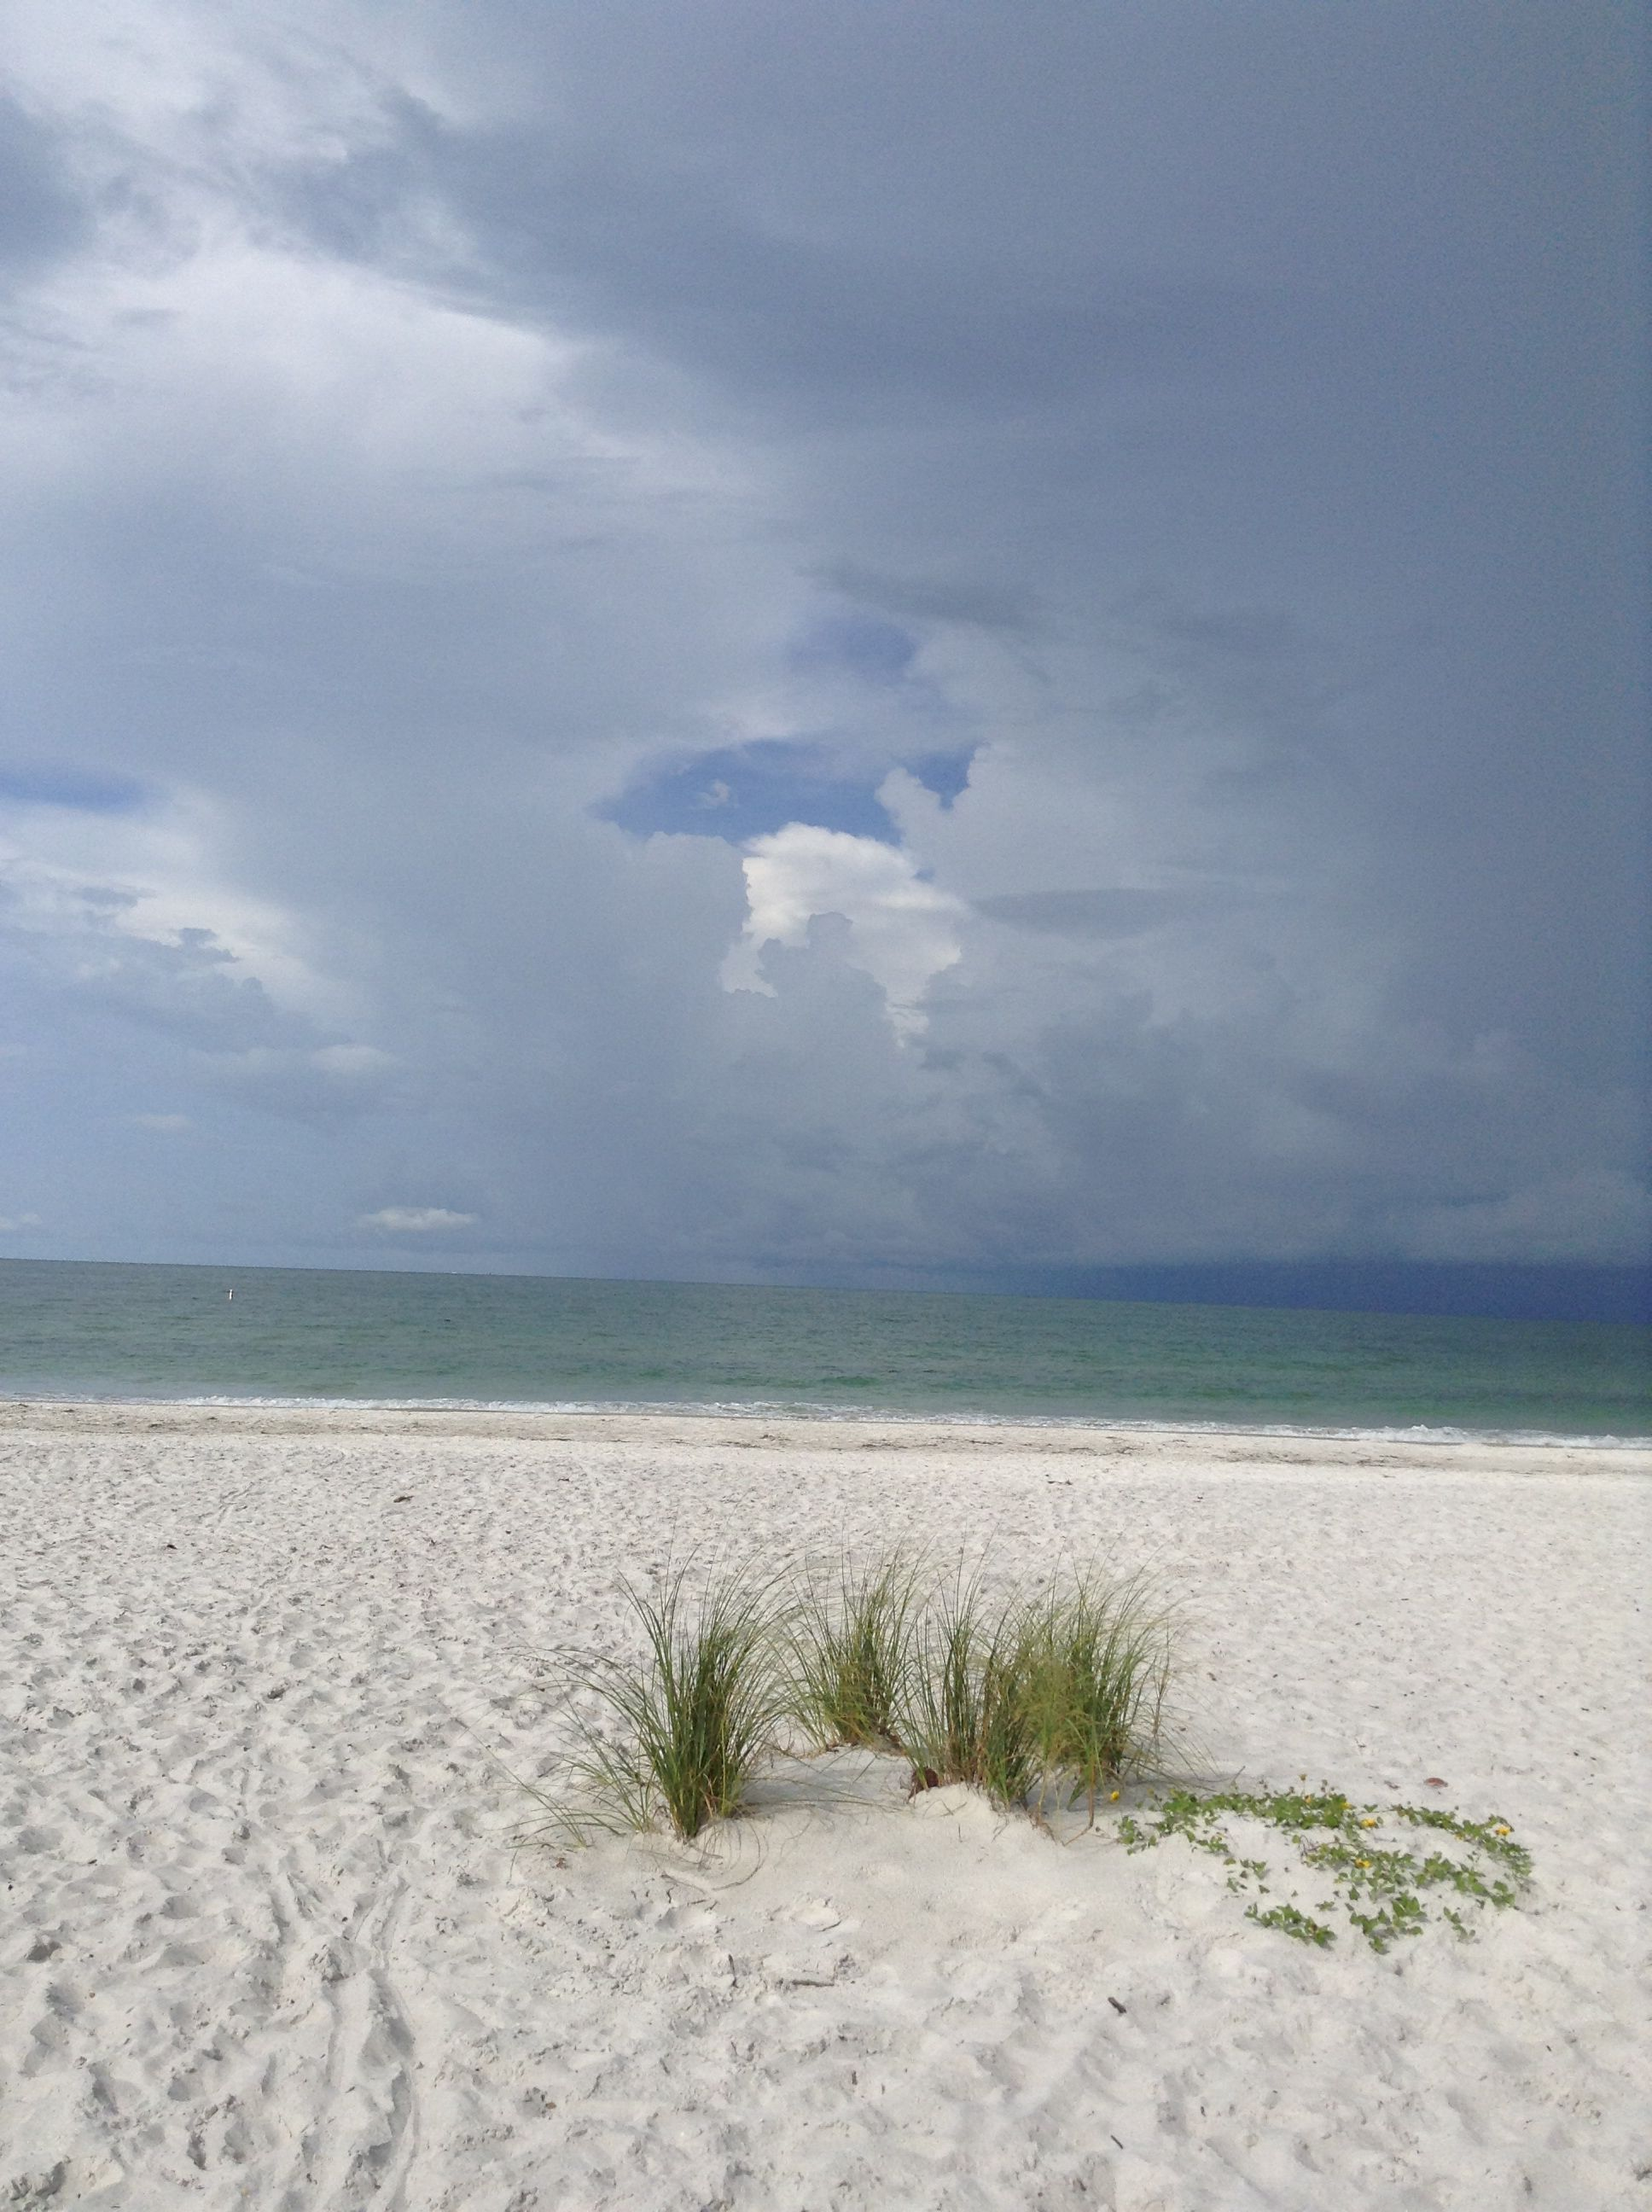 A calm before the storm. Even with a storm moving in the beach is awesome